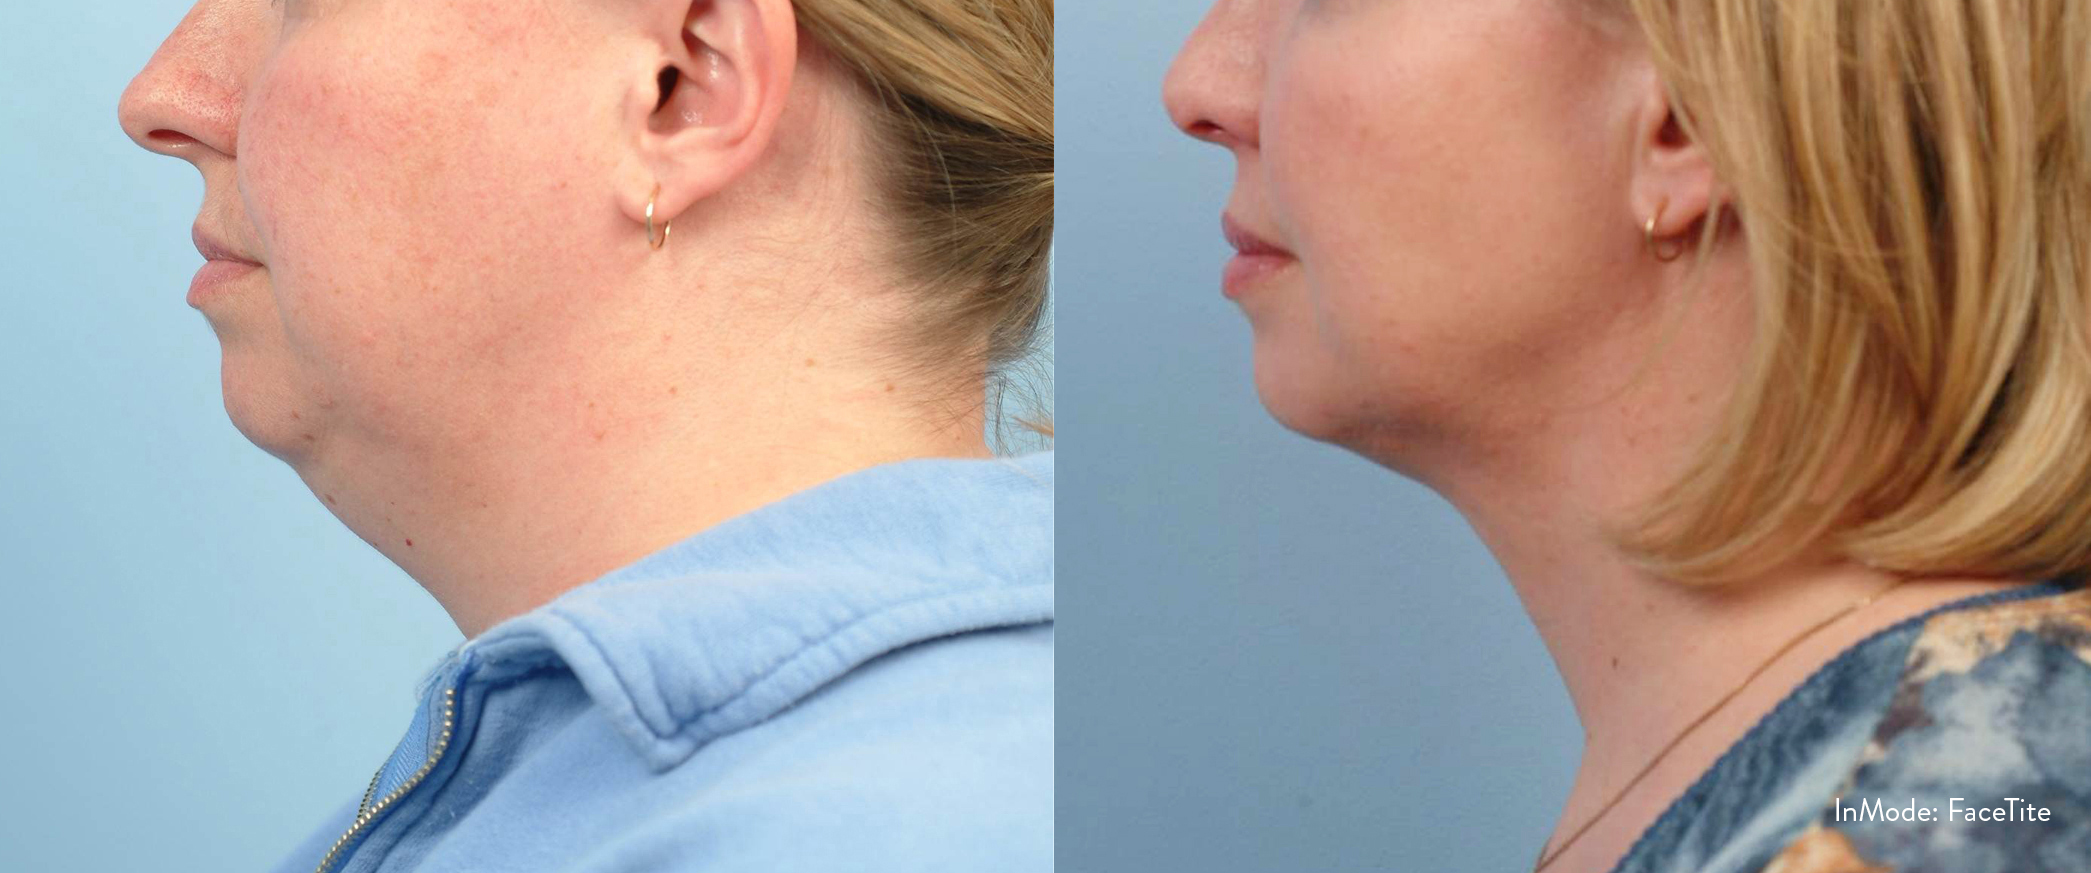 Face Tite - Chin and Neck - Male Patient